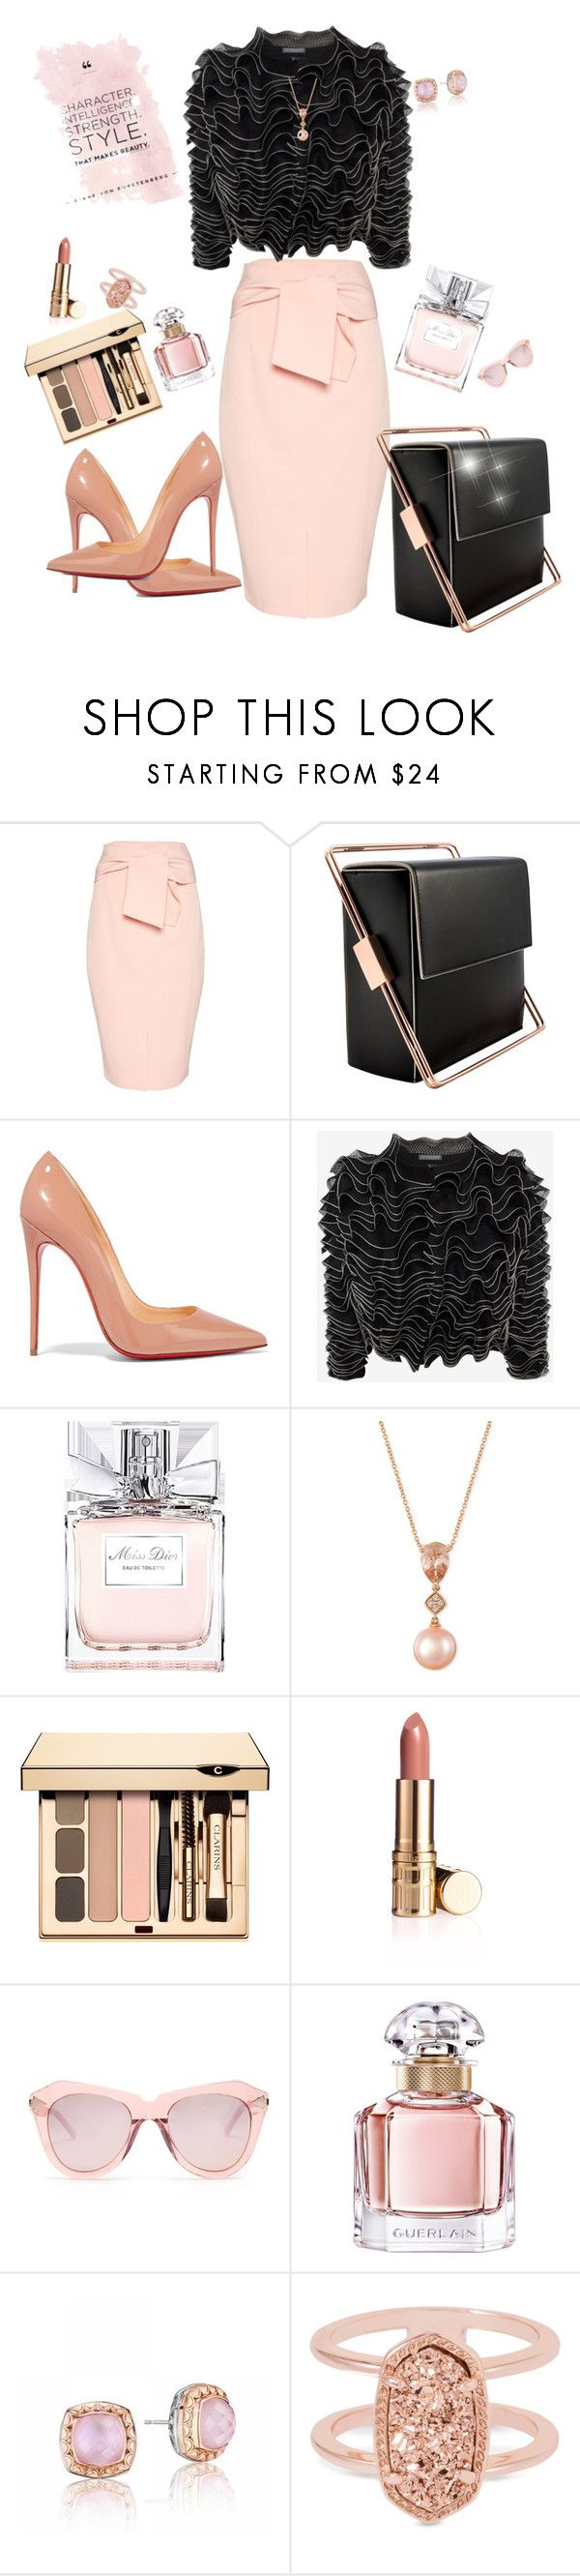 Peach rose and elegant black color by Diva of Cake featuring mode, Alexander McQueen, Topshop, Christian Louboutin, Lautēm, Tacori, Kendra Scott, LE VIAN, Karen Walker and Christian Dior